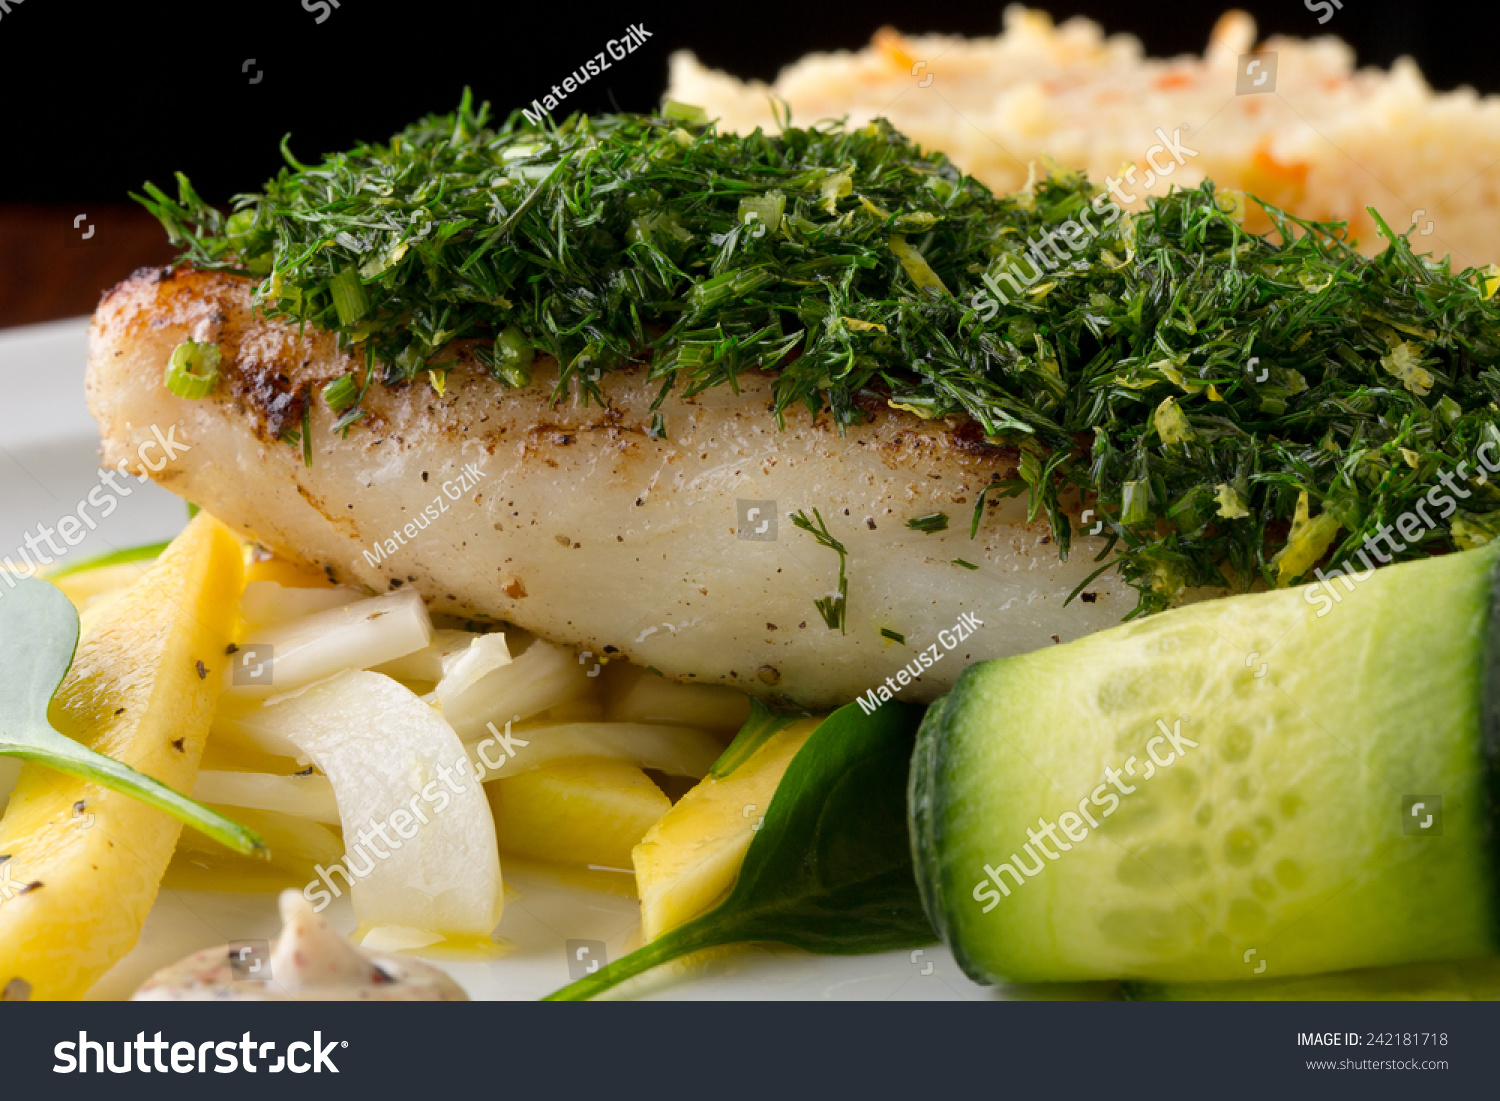 Cod fish with vegetables stock photo 242181718 shutterstock for Fish with vegetables